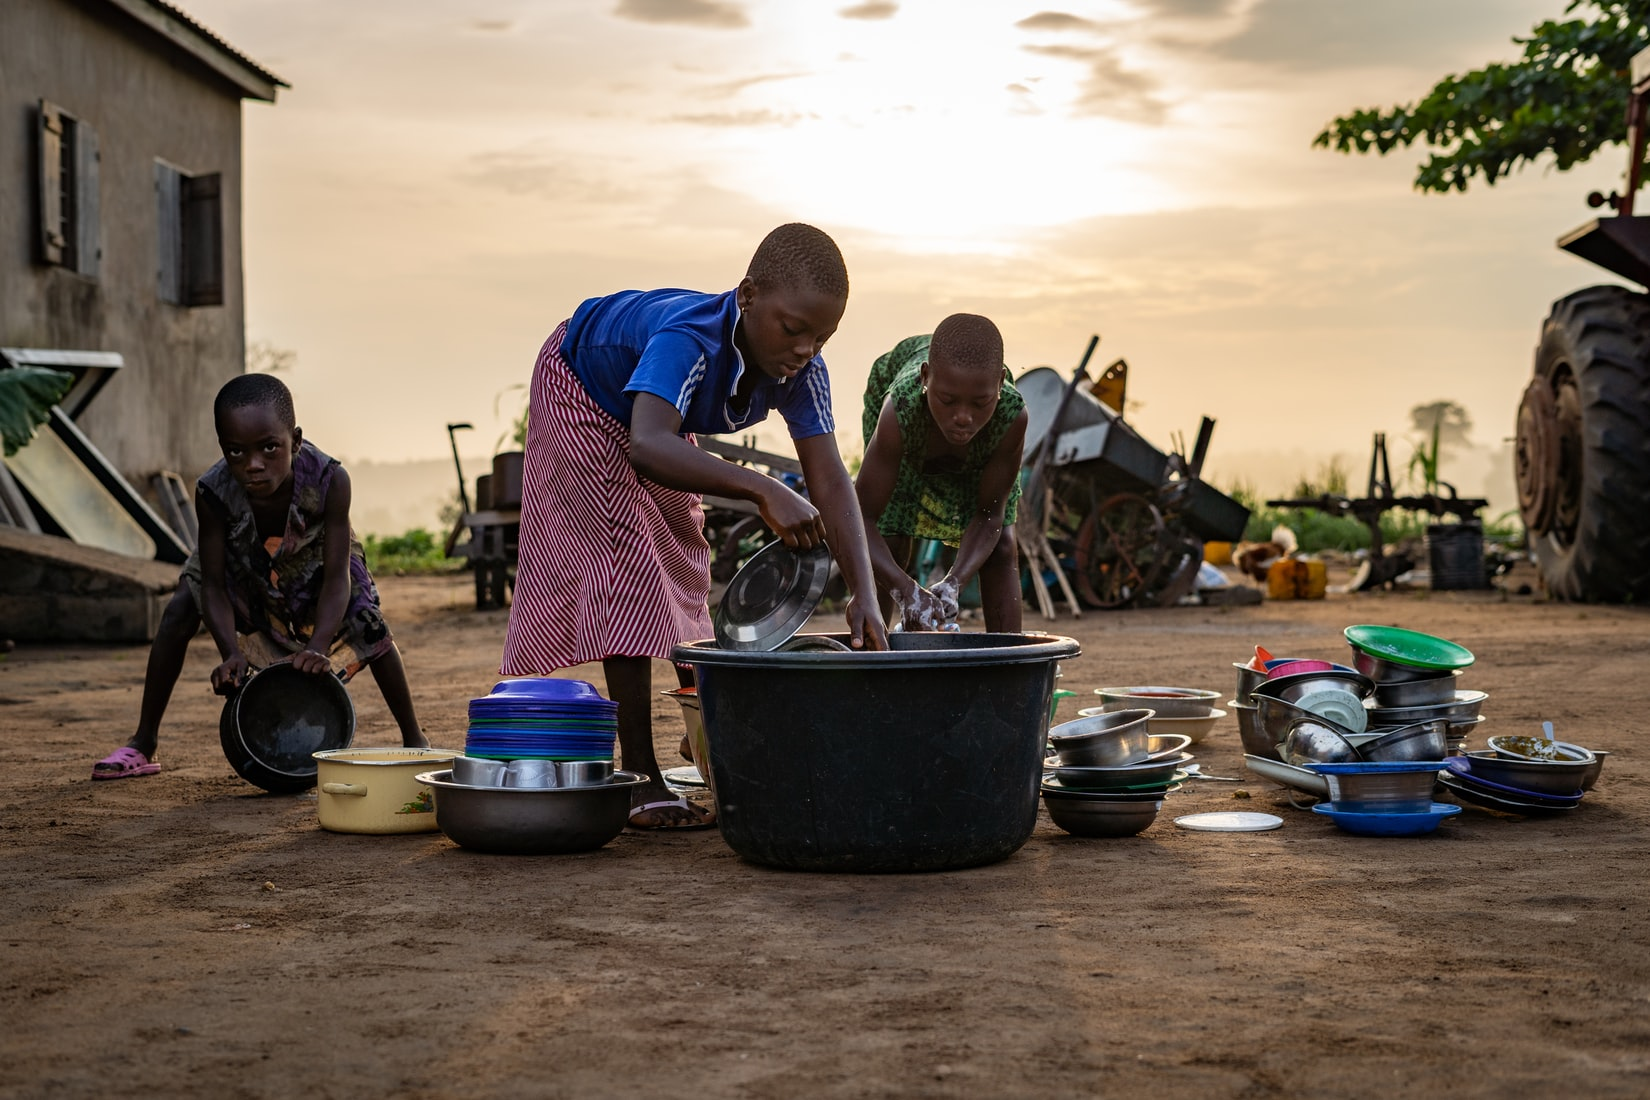 Black African children washing dishes outside